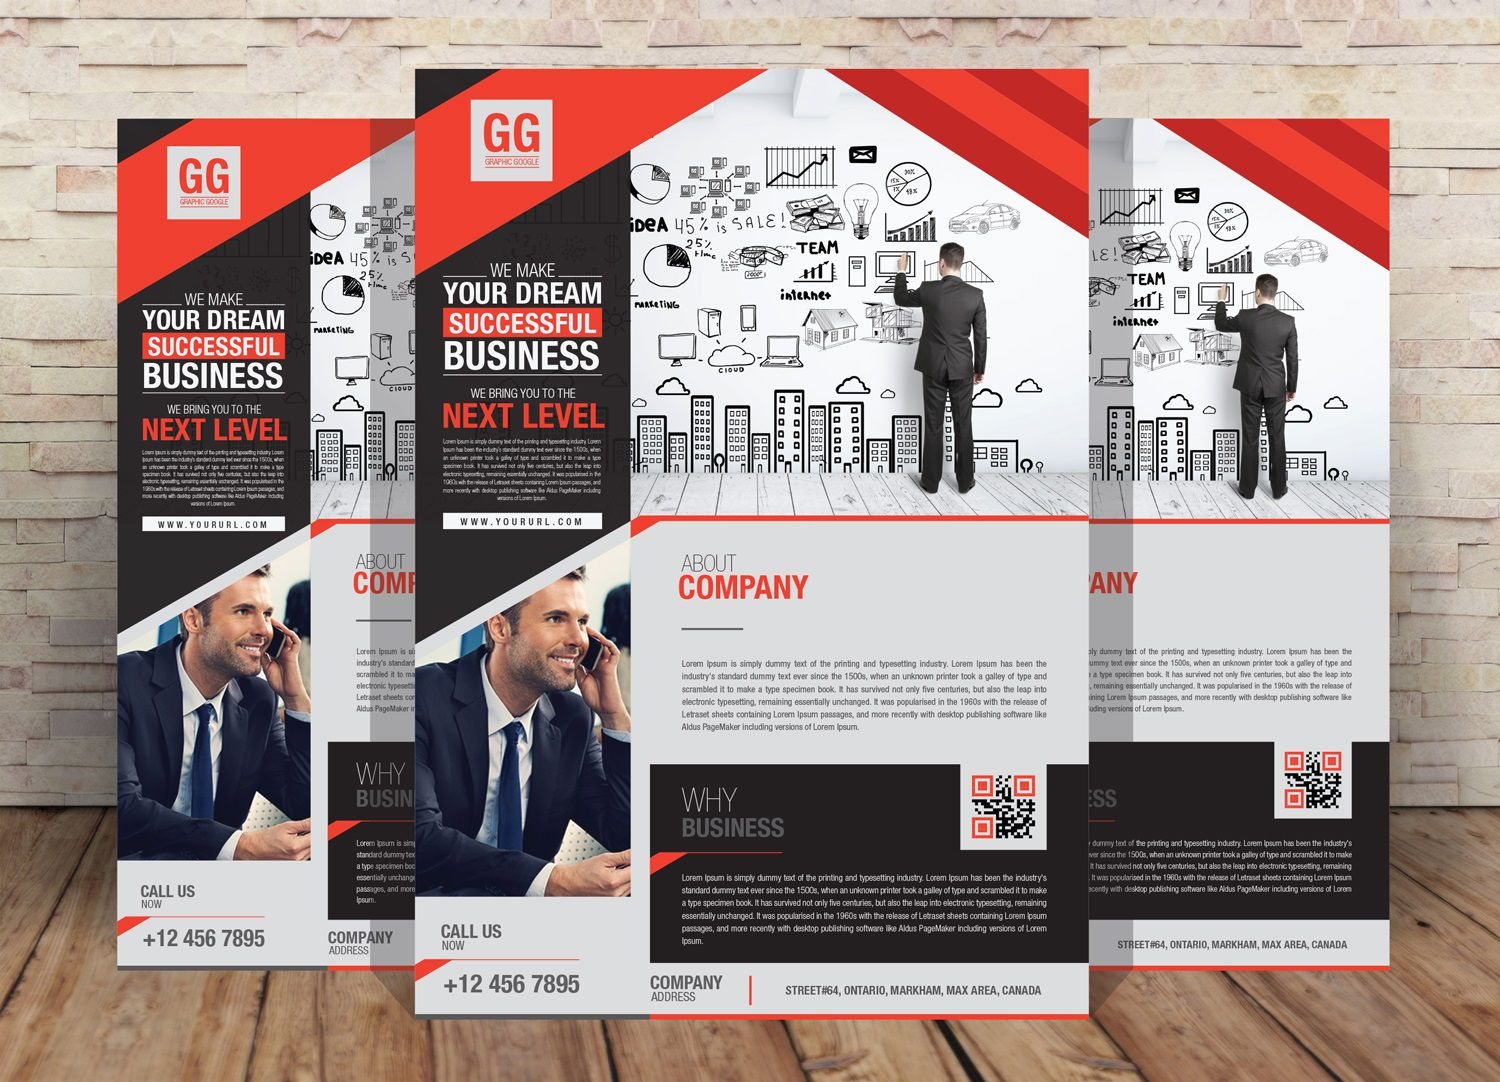 007 Beautiful Free Flyer Design Template Highest Quality  Indesign For Word MicrosoftFull